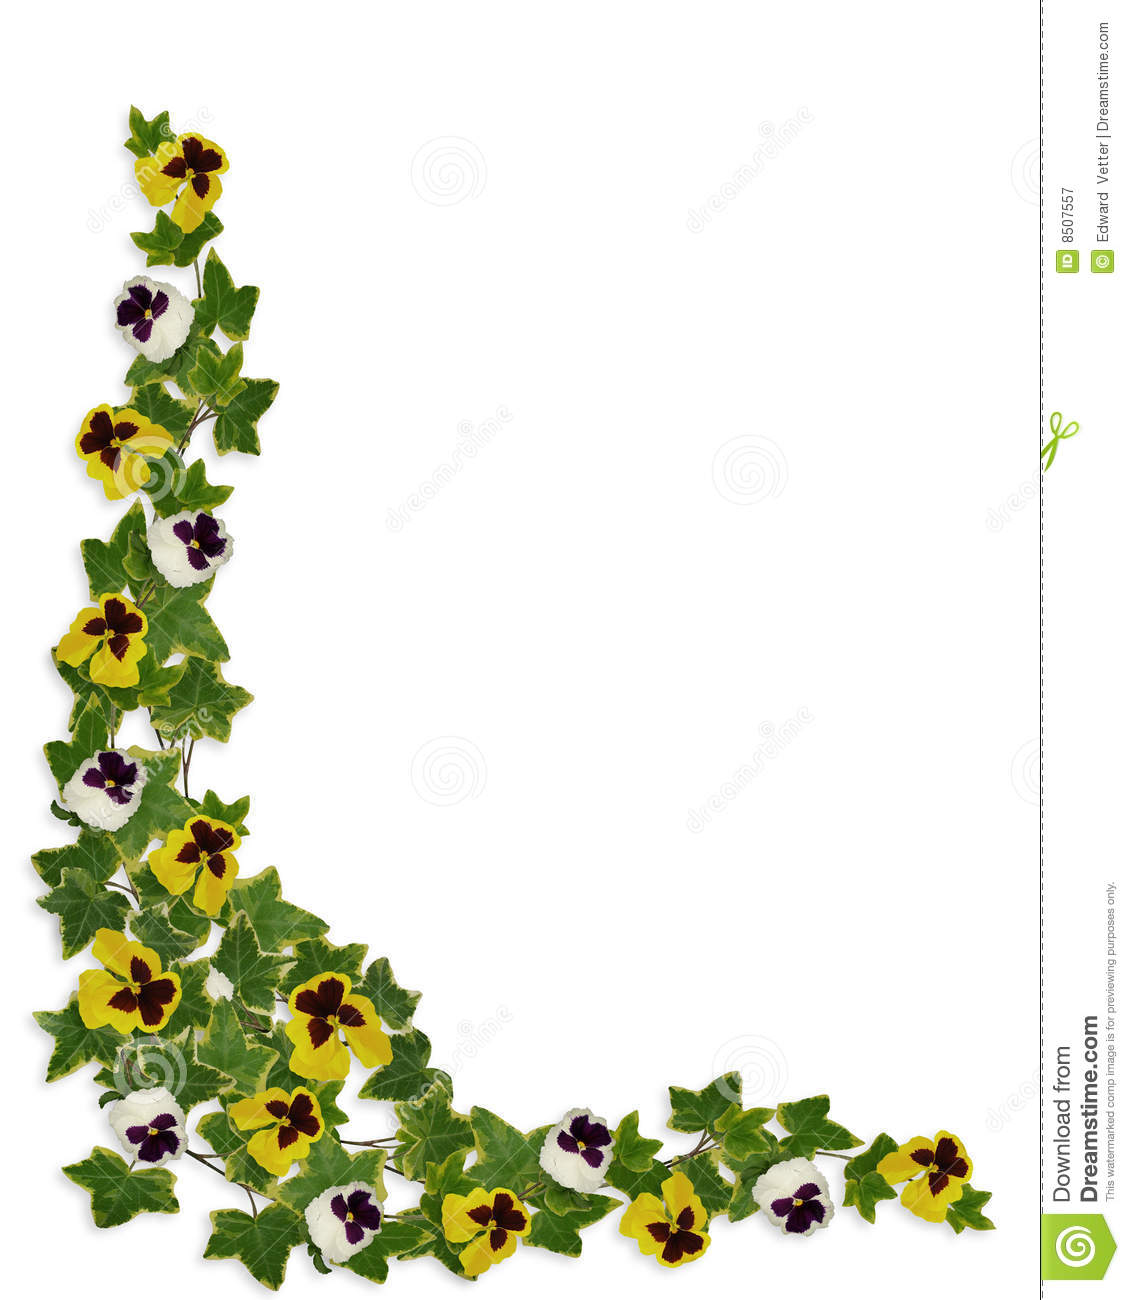 Ivy And Pansies Floral Border Royalty Free Stock